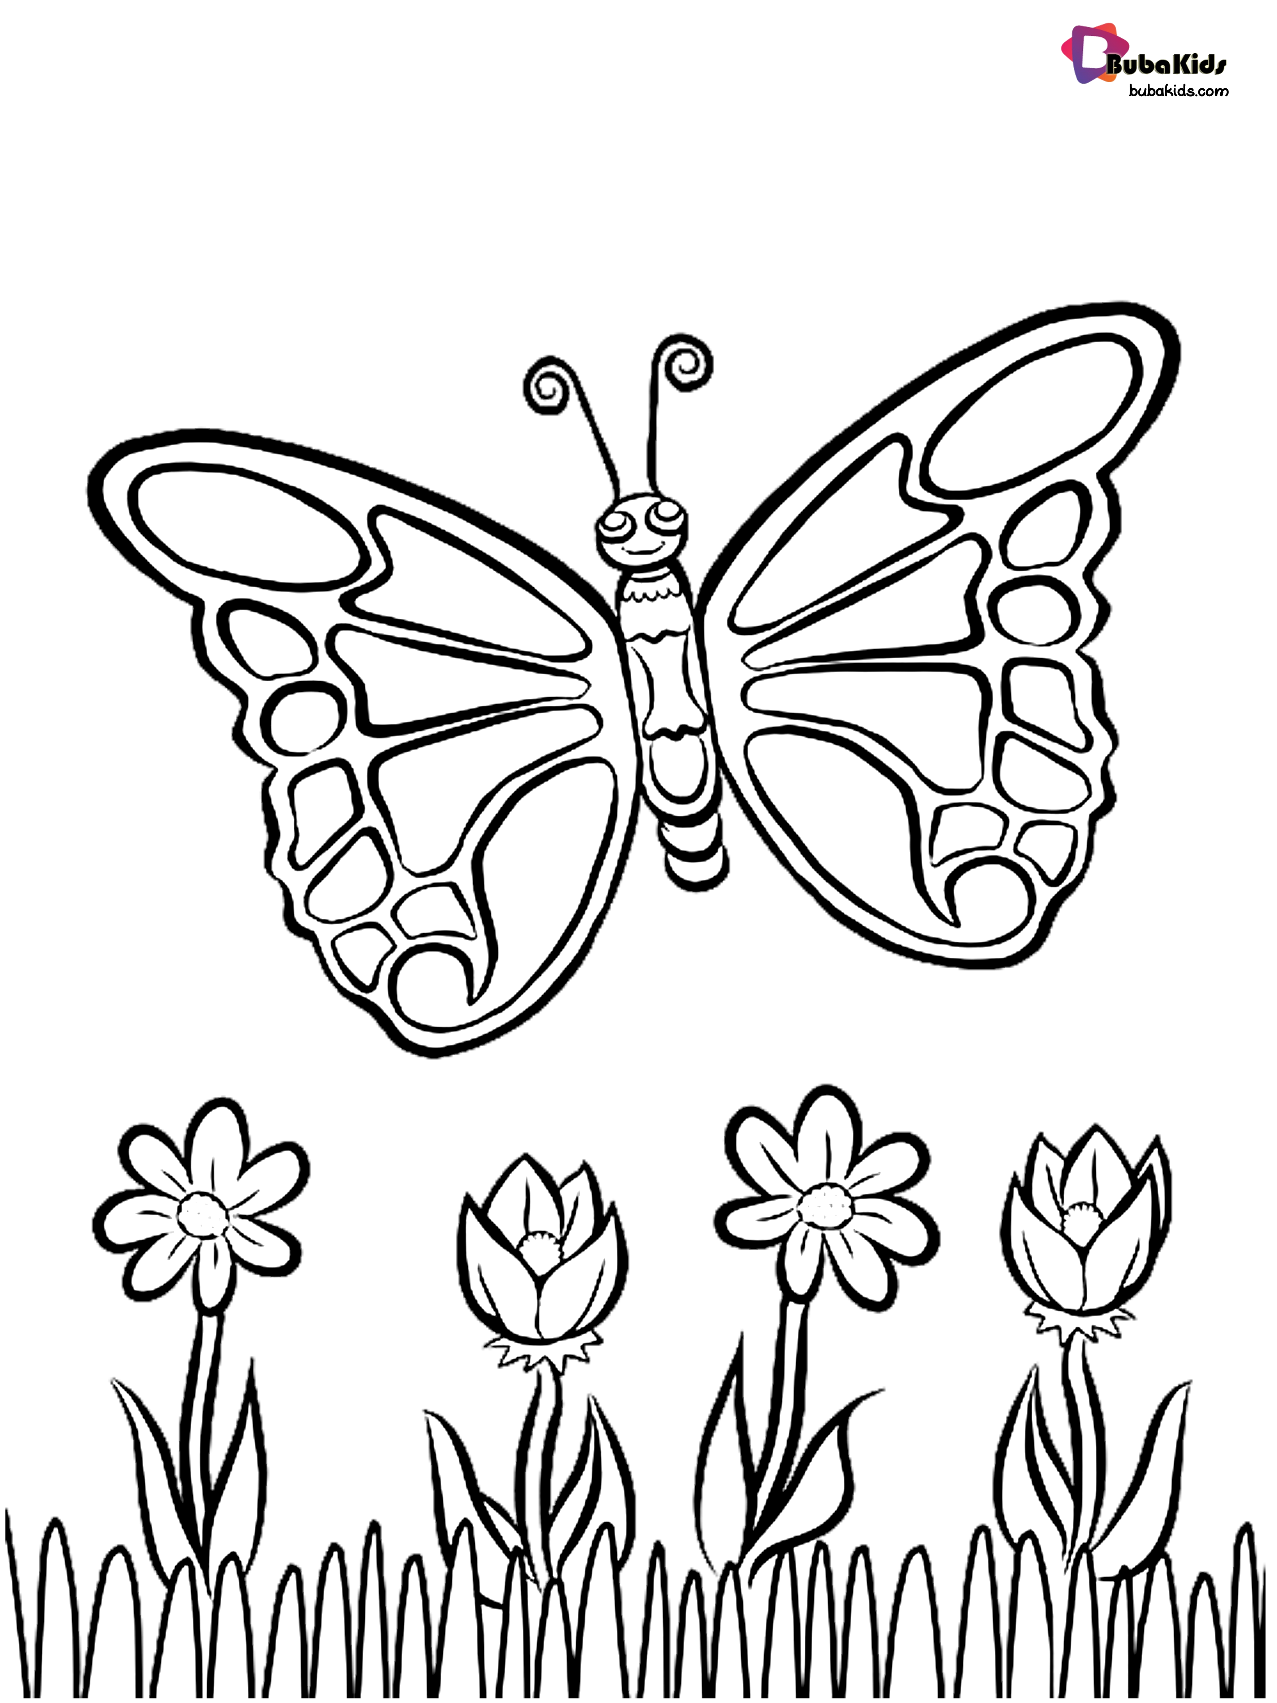 Butterfly Over Flowers Coloring Page Coloring Com Butterfly Coloring Page Spring Coloring Pages Flower Coloring Sheets